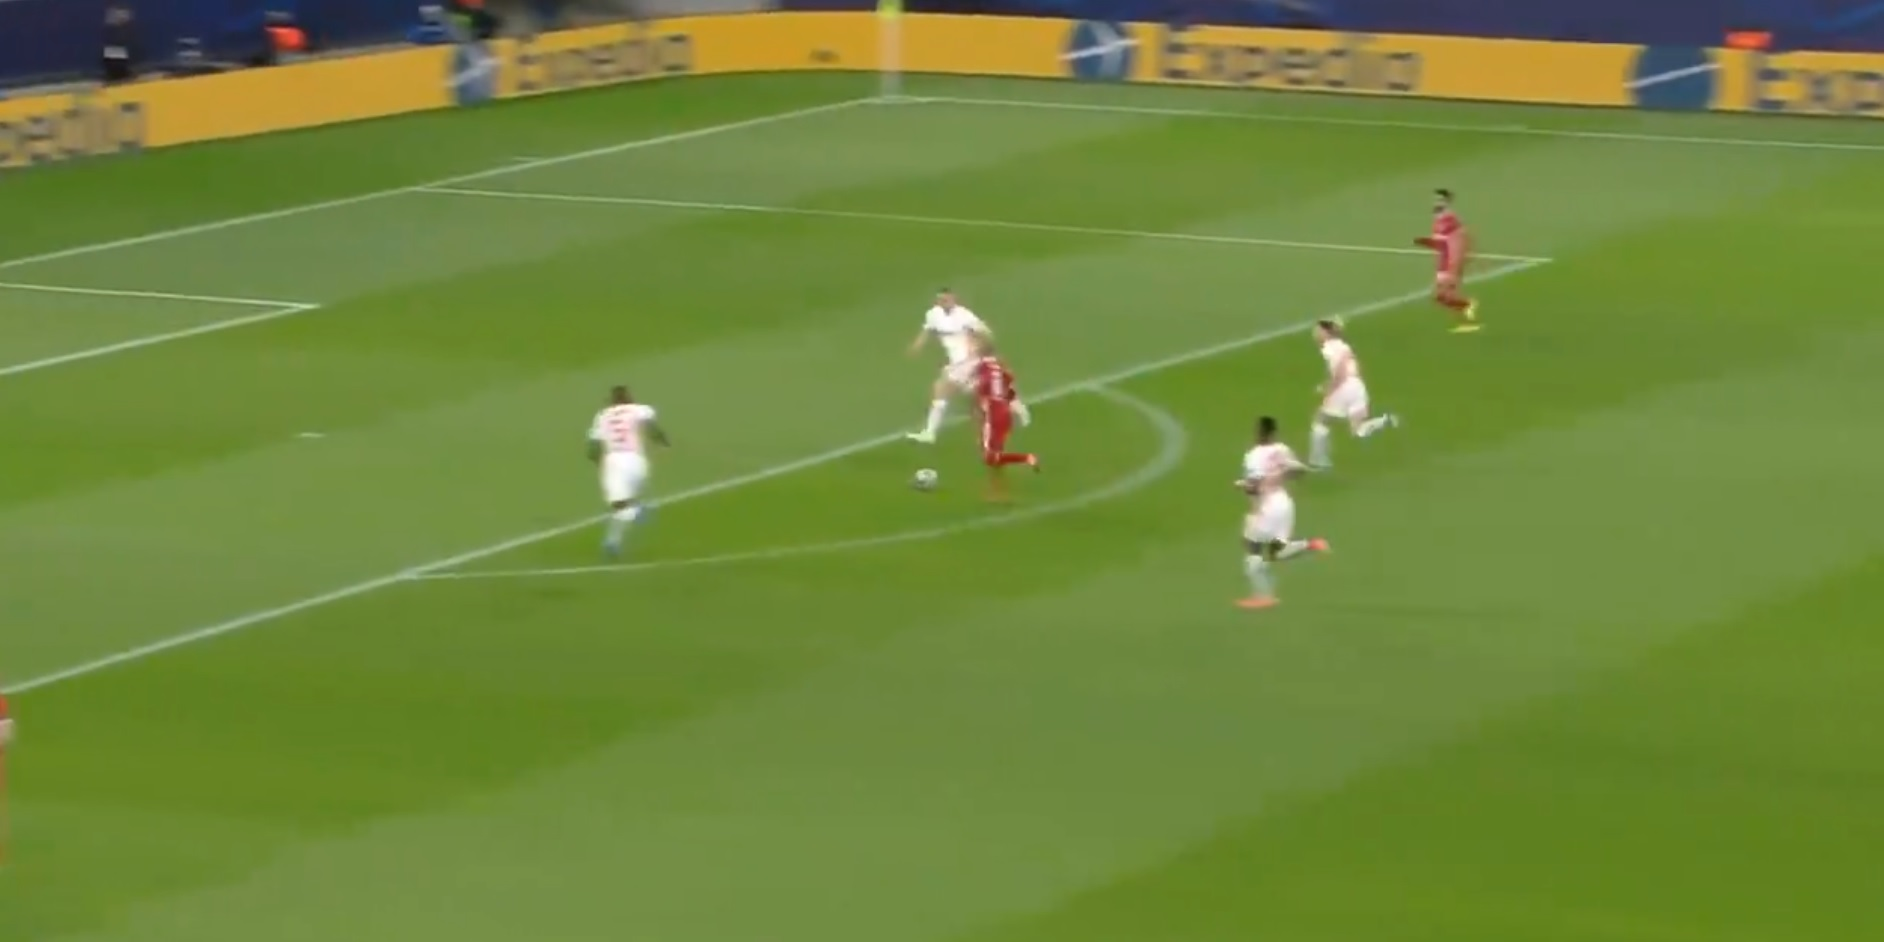 (Video) Thiago wastes golden goalscoring opportunity after silky interplay from Wijnaldum and Mane